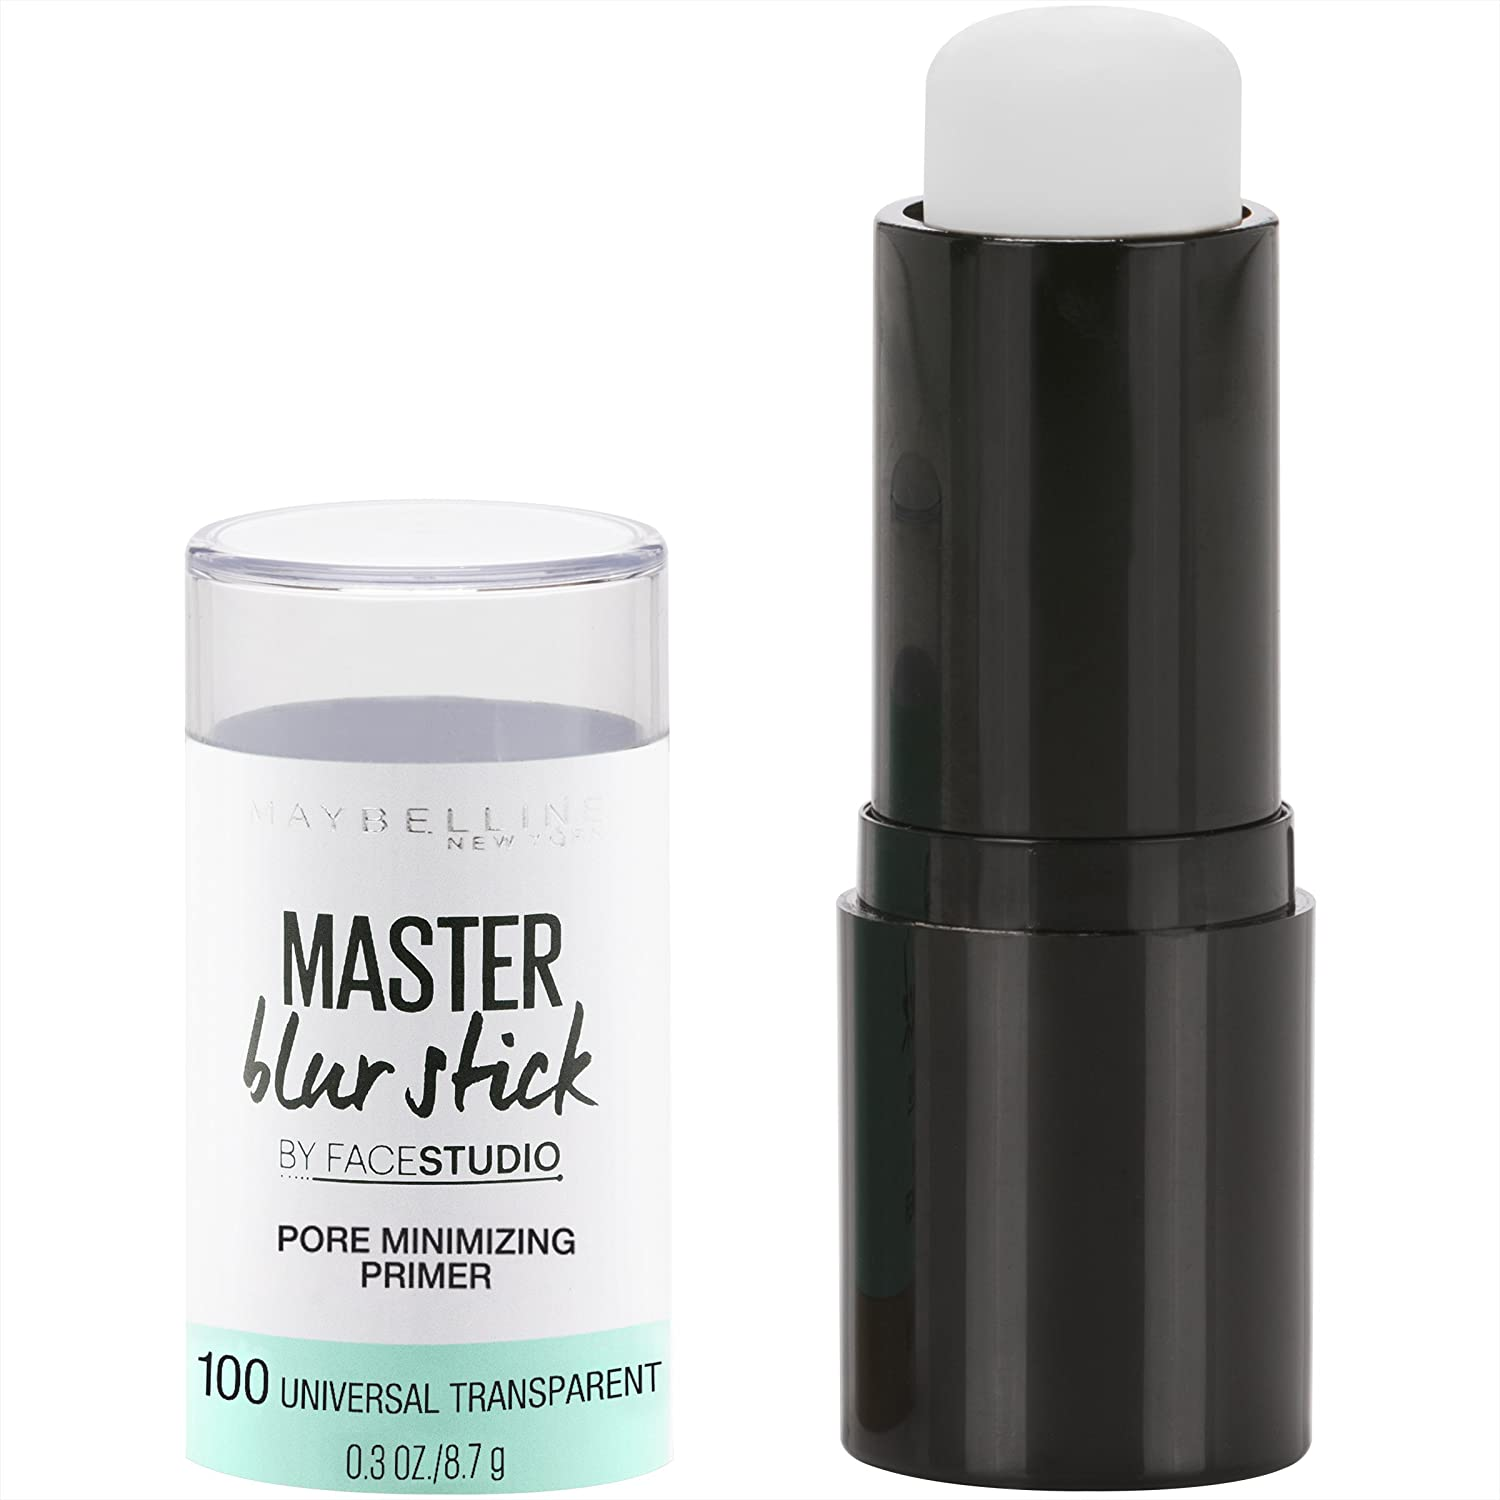 Maybelline New York Facestudio Master Blur Stick Primer Makeup, Universal Transparent, 0.3 oz. 041554548341